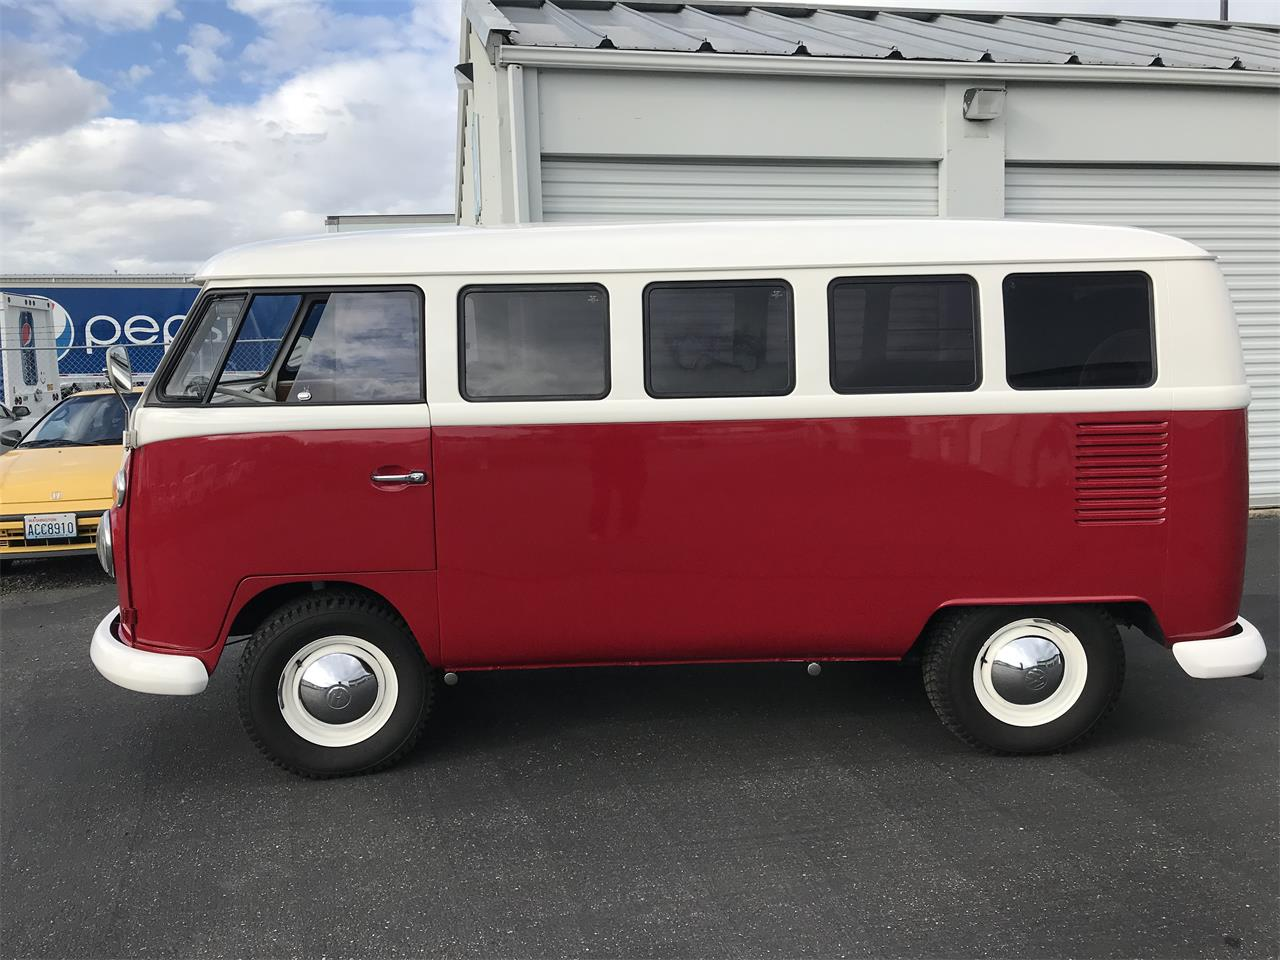 Large Picture of '67 Bus - $35,000.00 Offered by Imports & Classics - OHRO